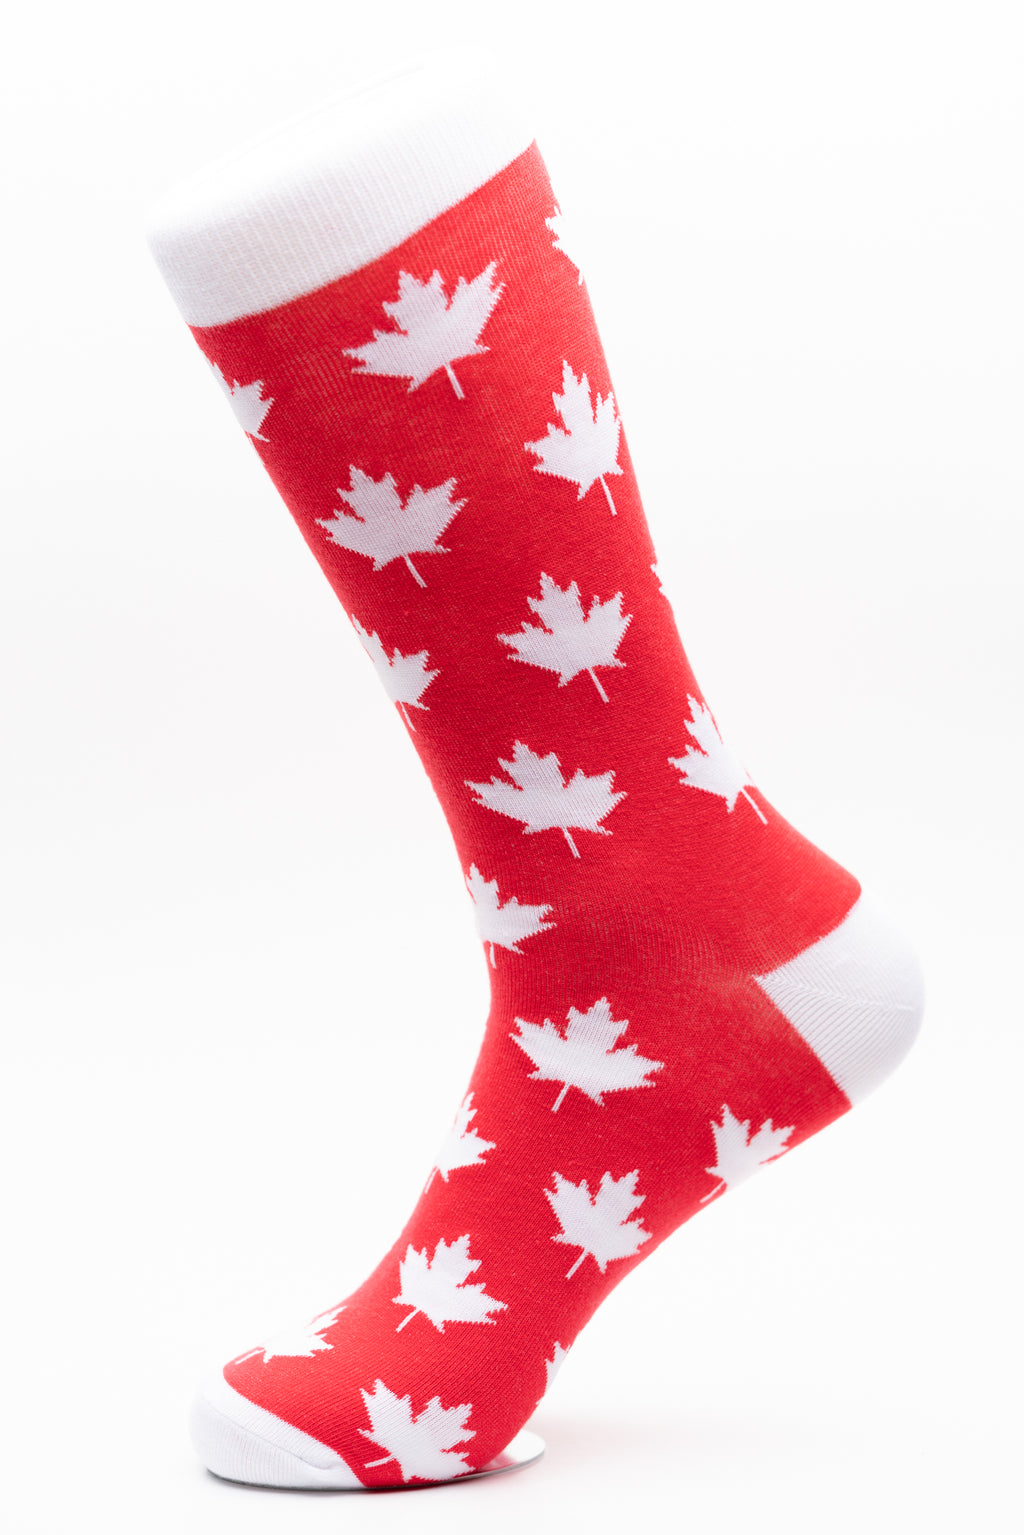 Canada Maple Leaf Crew Socks